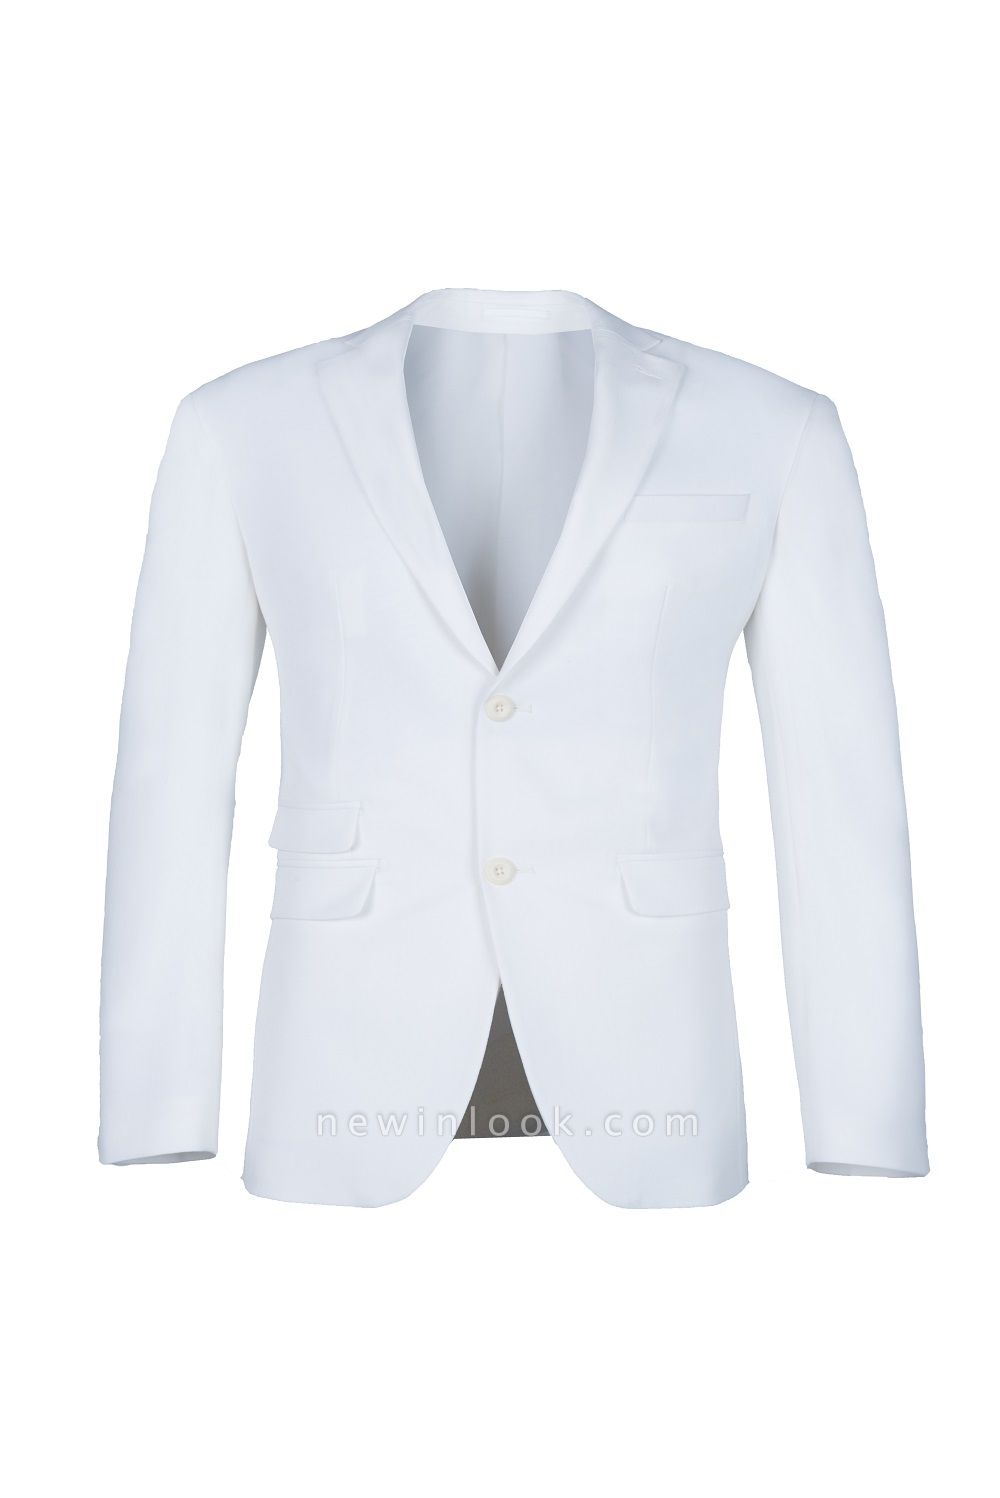 High Quality White Back Vent Two Button Casual Suit Chambelanes  Peak Lapel